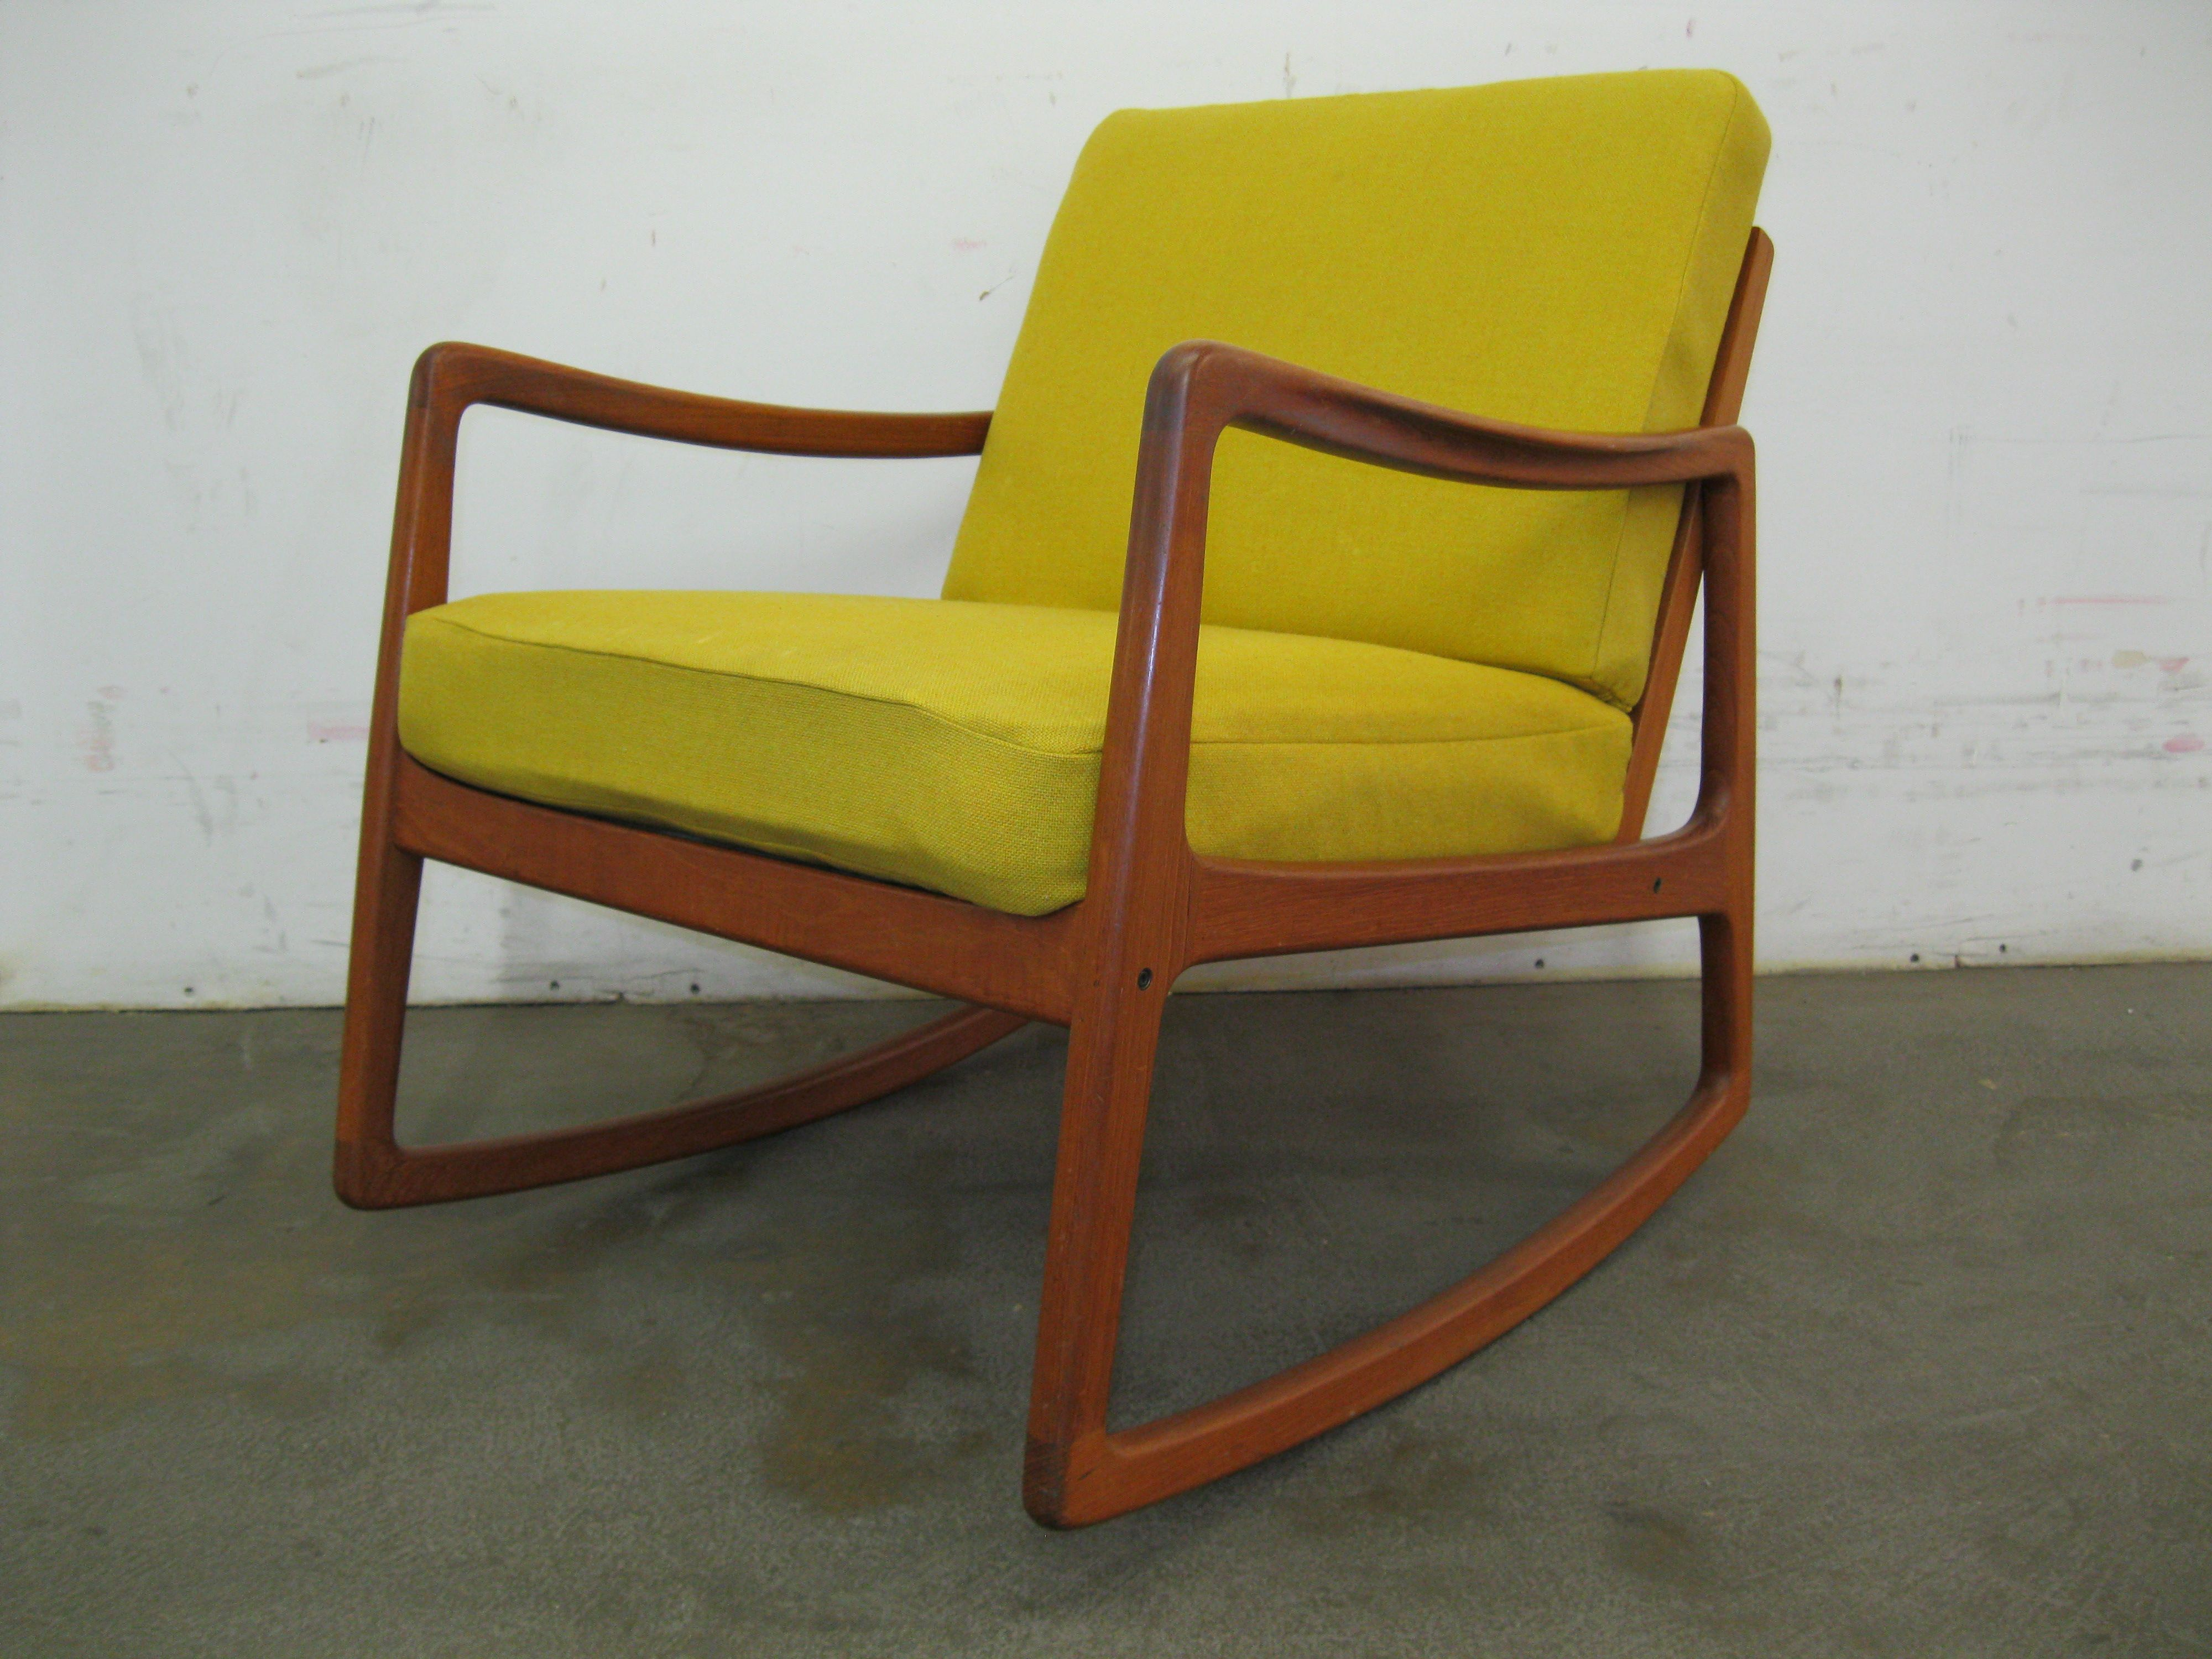 yellow rocking chair high chairs kmart danish teak ole wanscher for france and sons